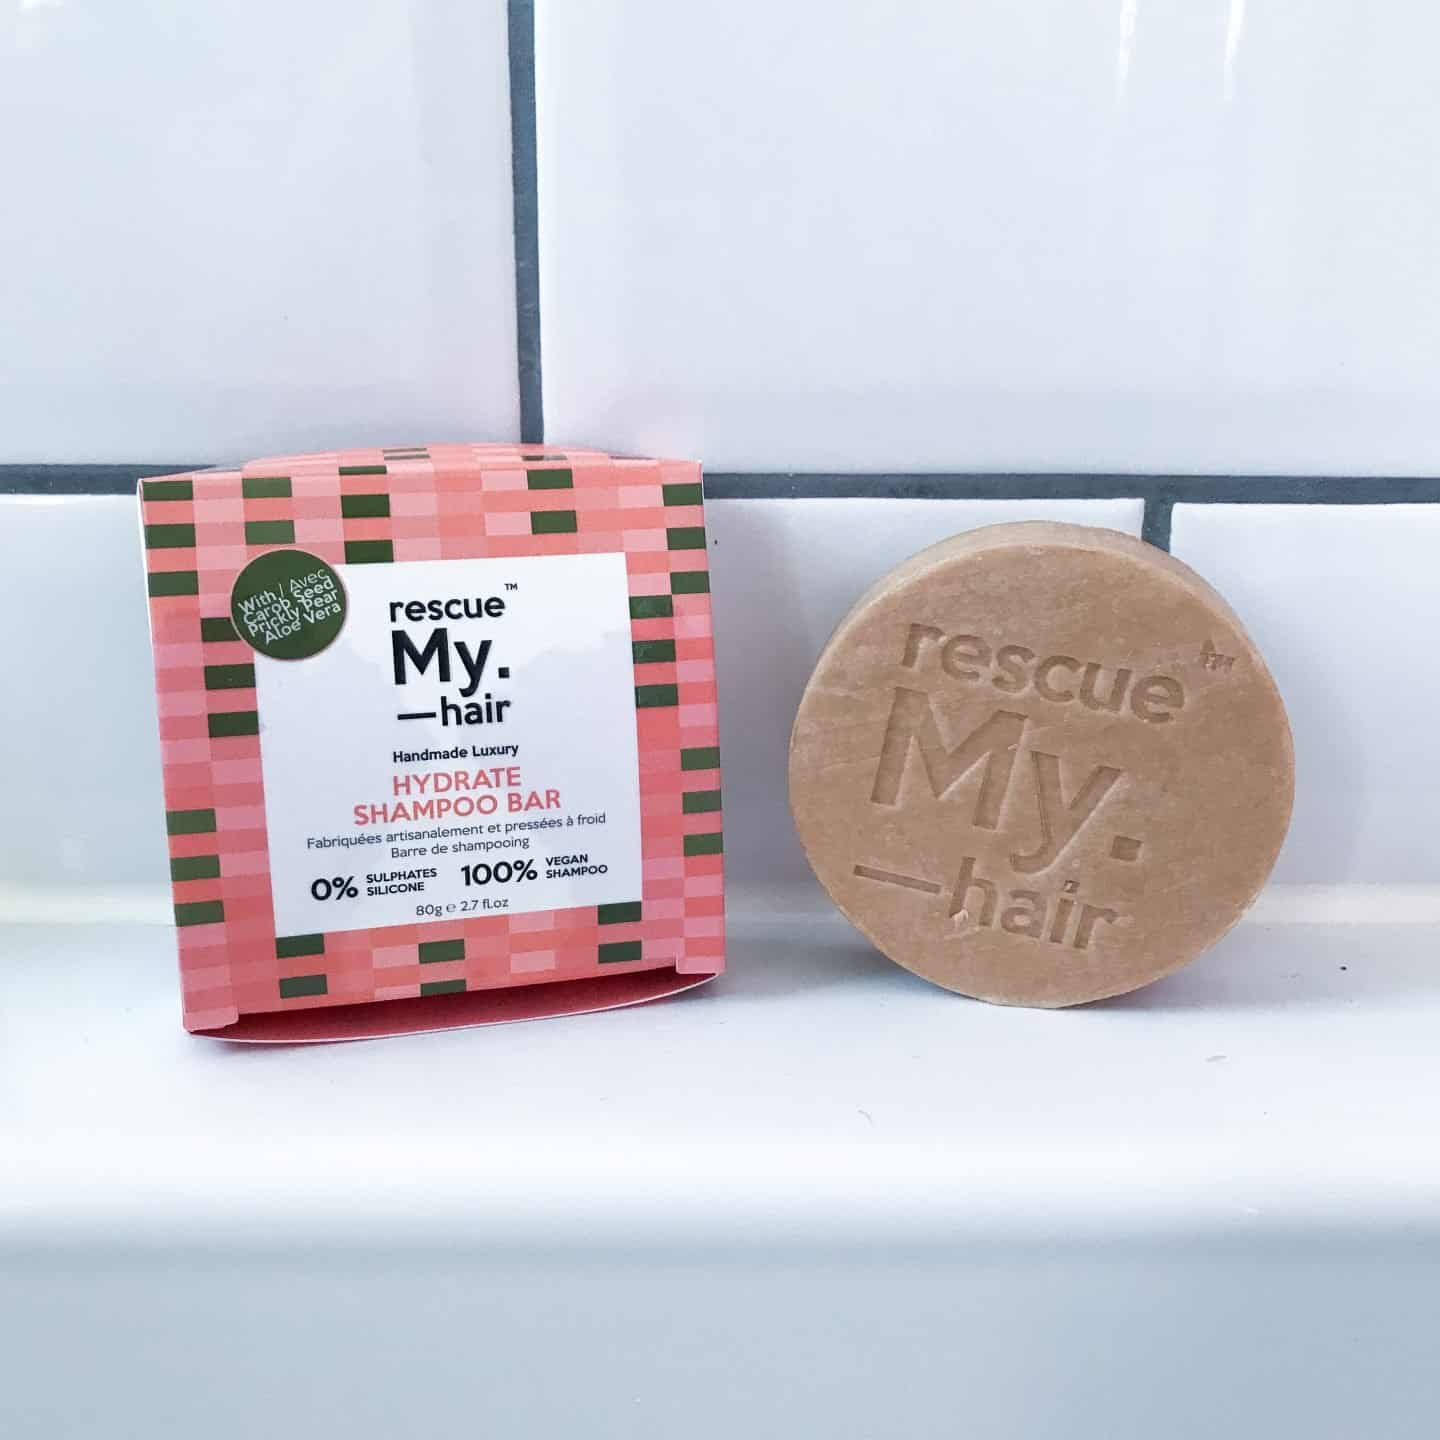 My. Haircare Rescue My. Hair Hydrate Shampoo Bar Review